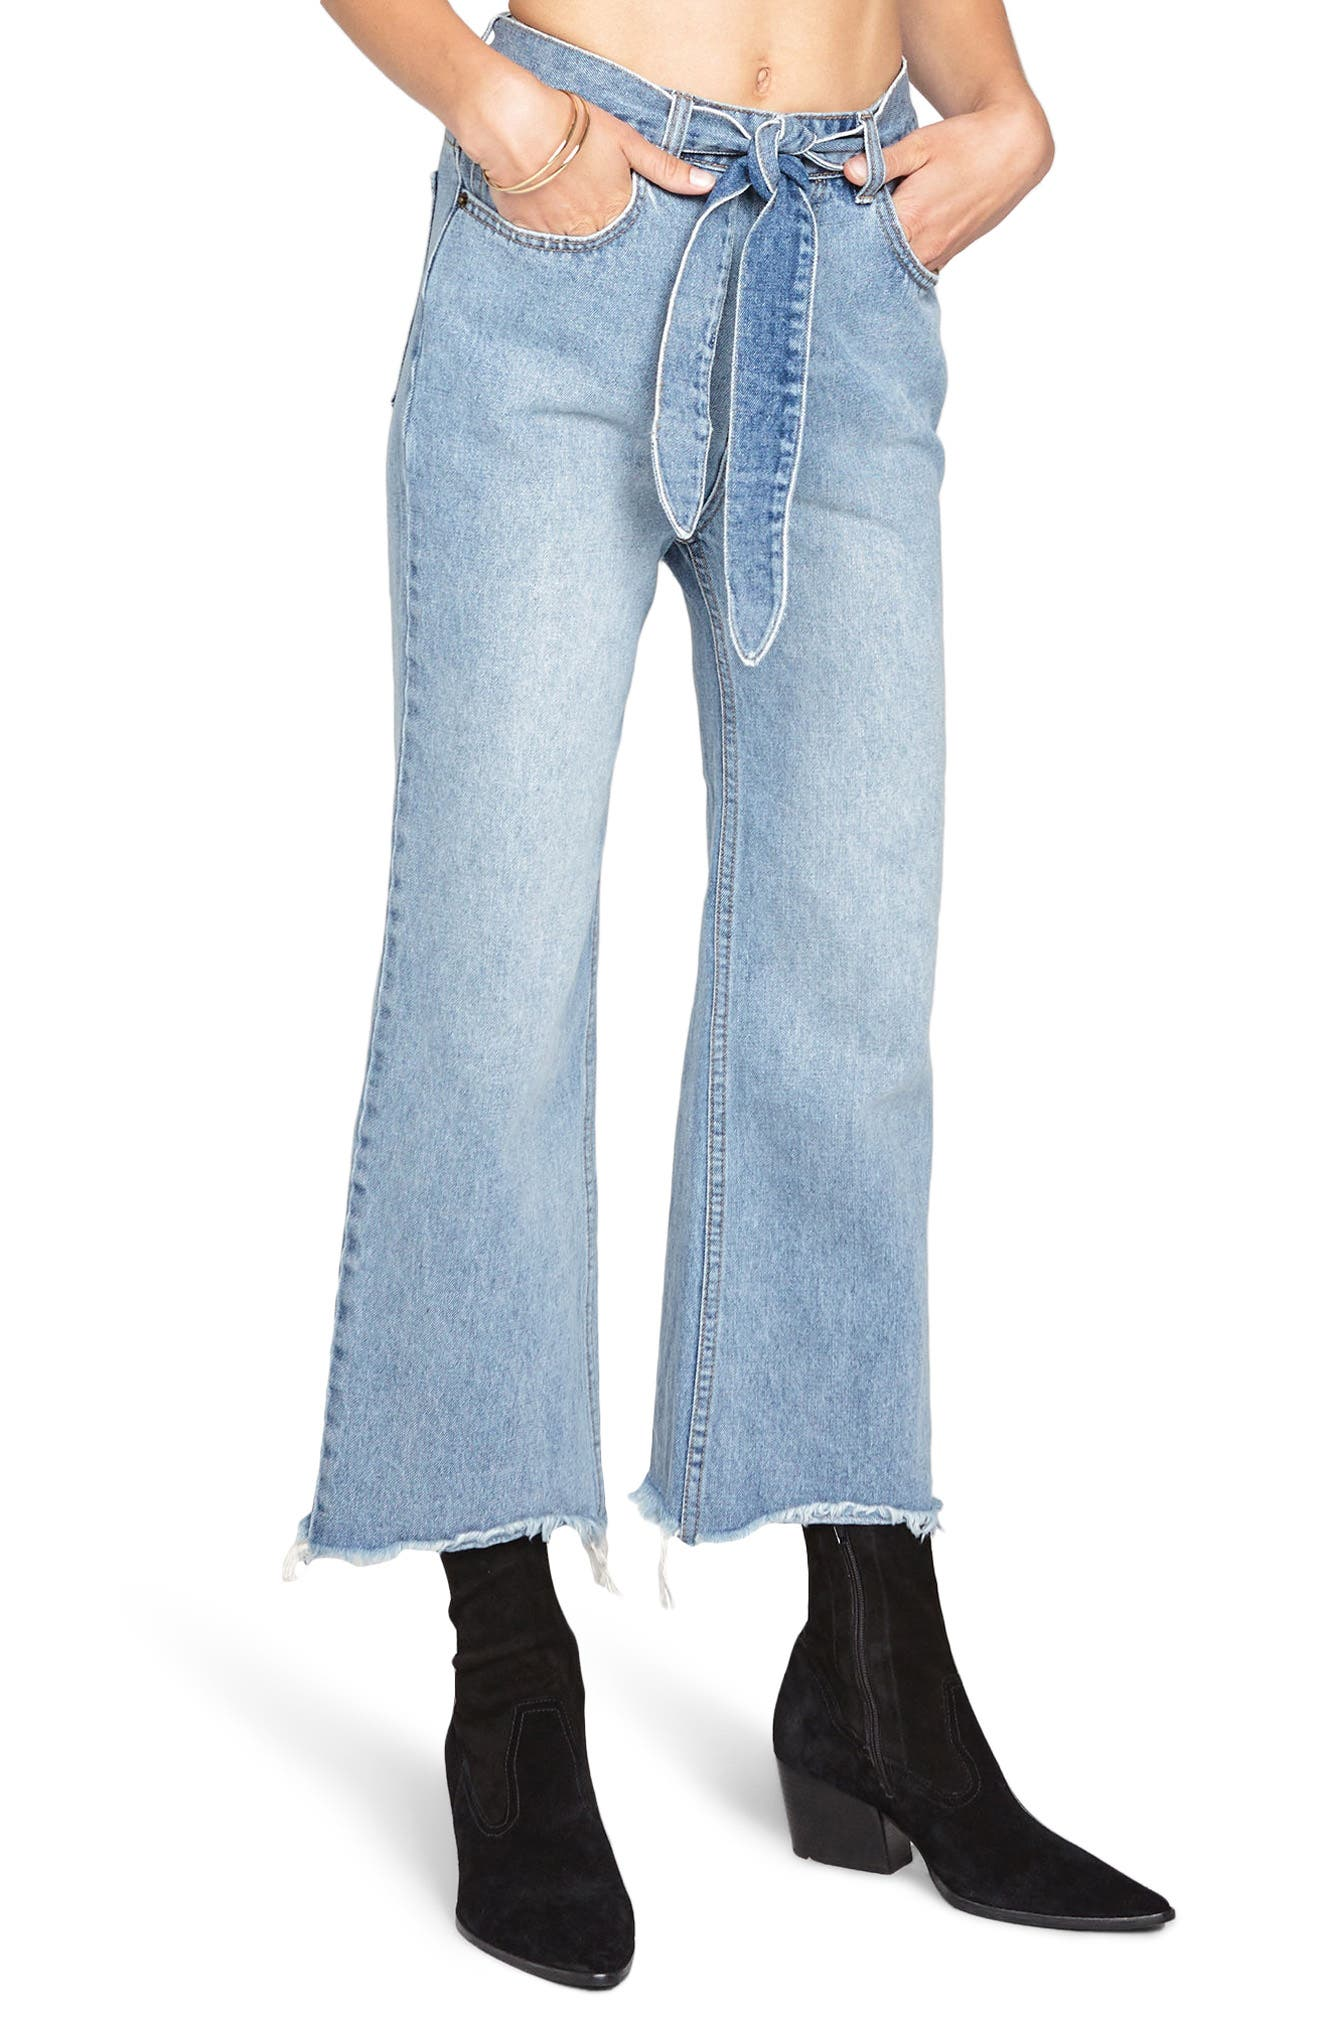 All Tied Up Crop Flare Jeans,                             Main thumbnail 1, color,                             Faded Vintage Wash